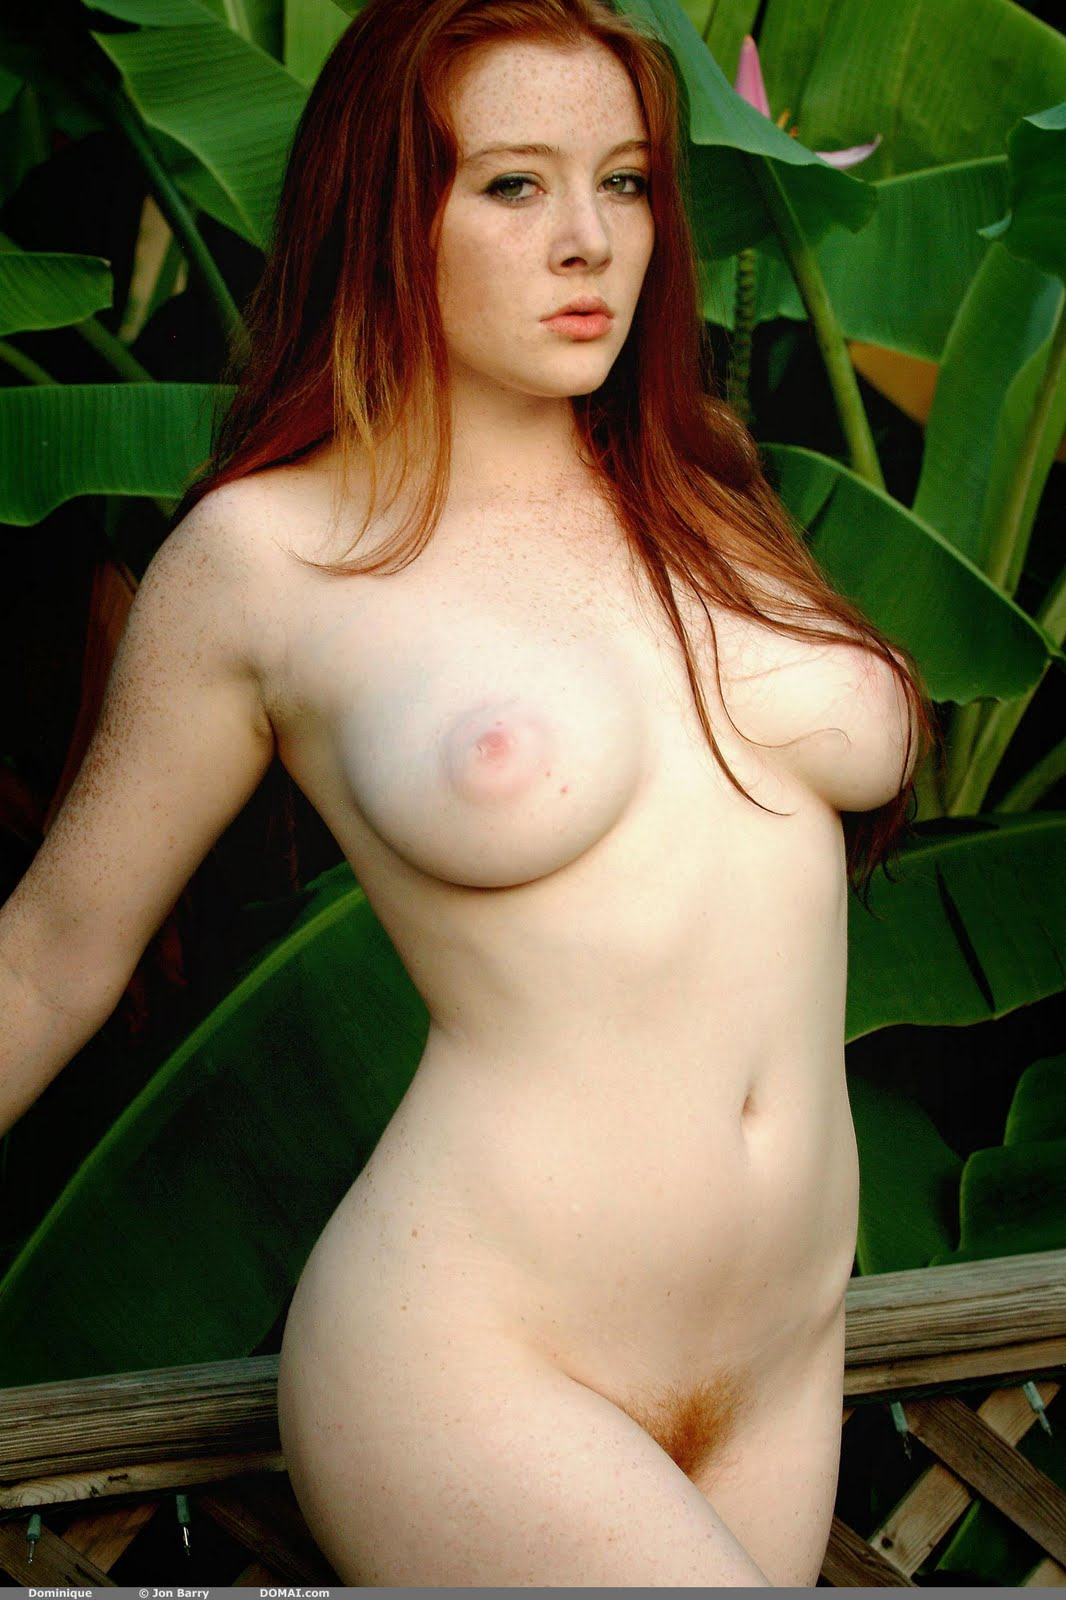 Red Heads Nude In Gym 2